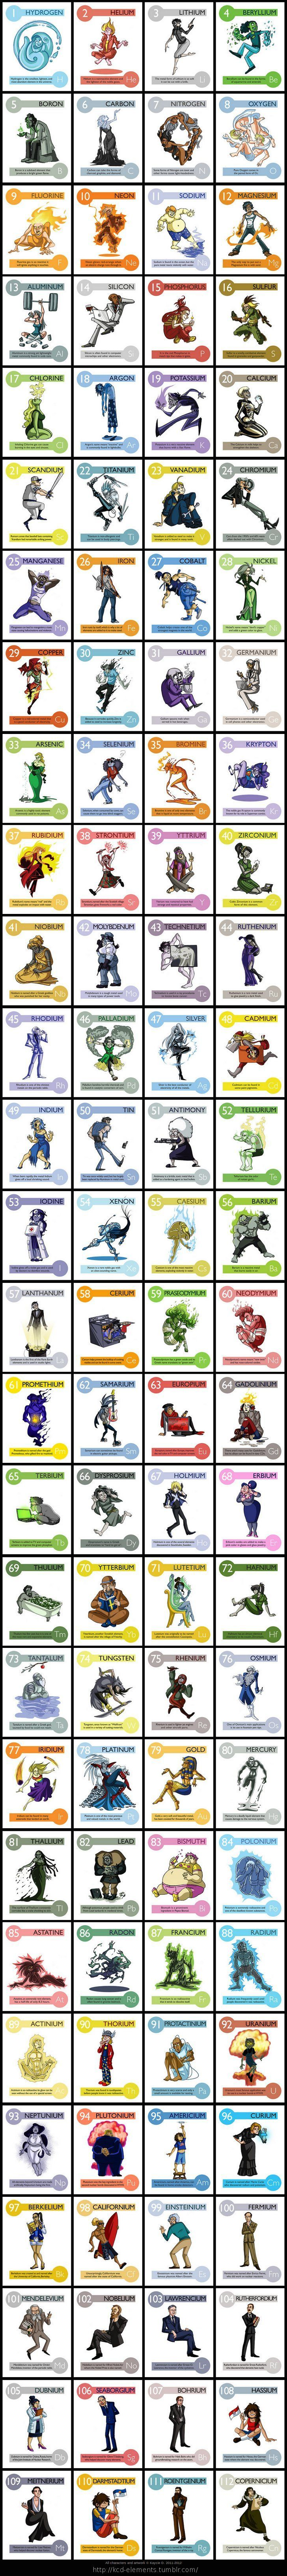 kcd-elements.tumb... Here are (almost) all of the elements of the periodic table portrayed as cartoon characters! You can see close-up versions of each element a...